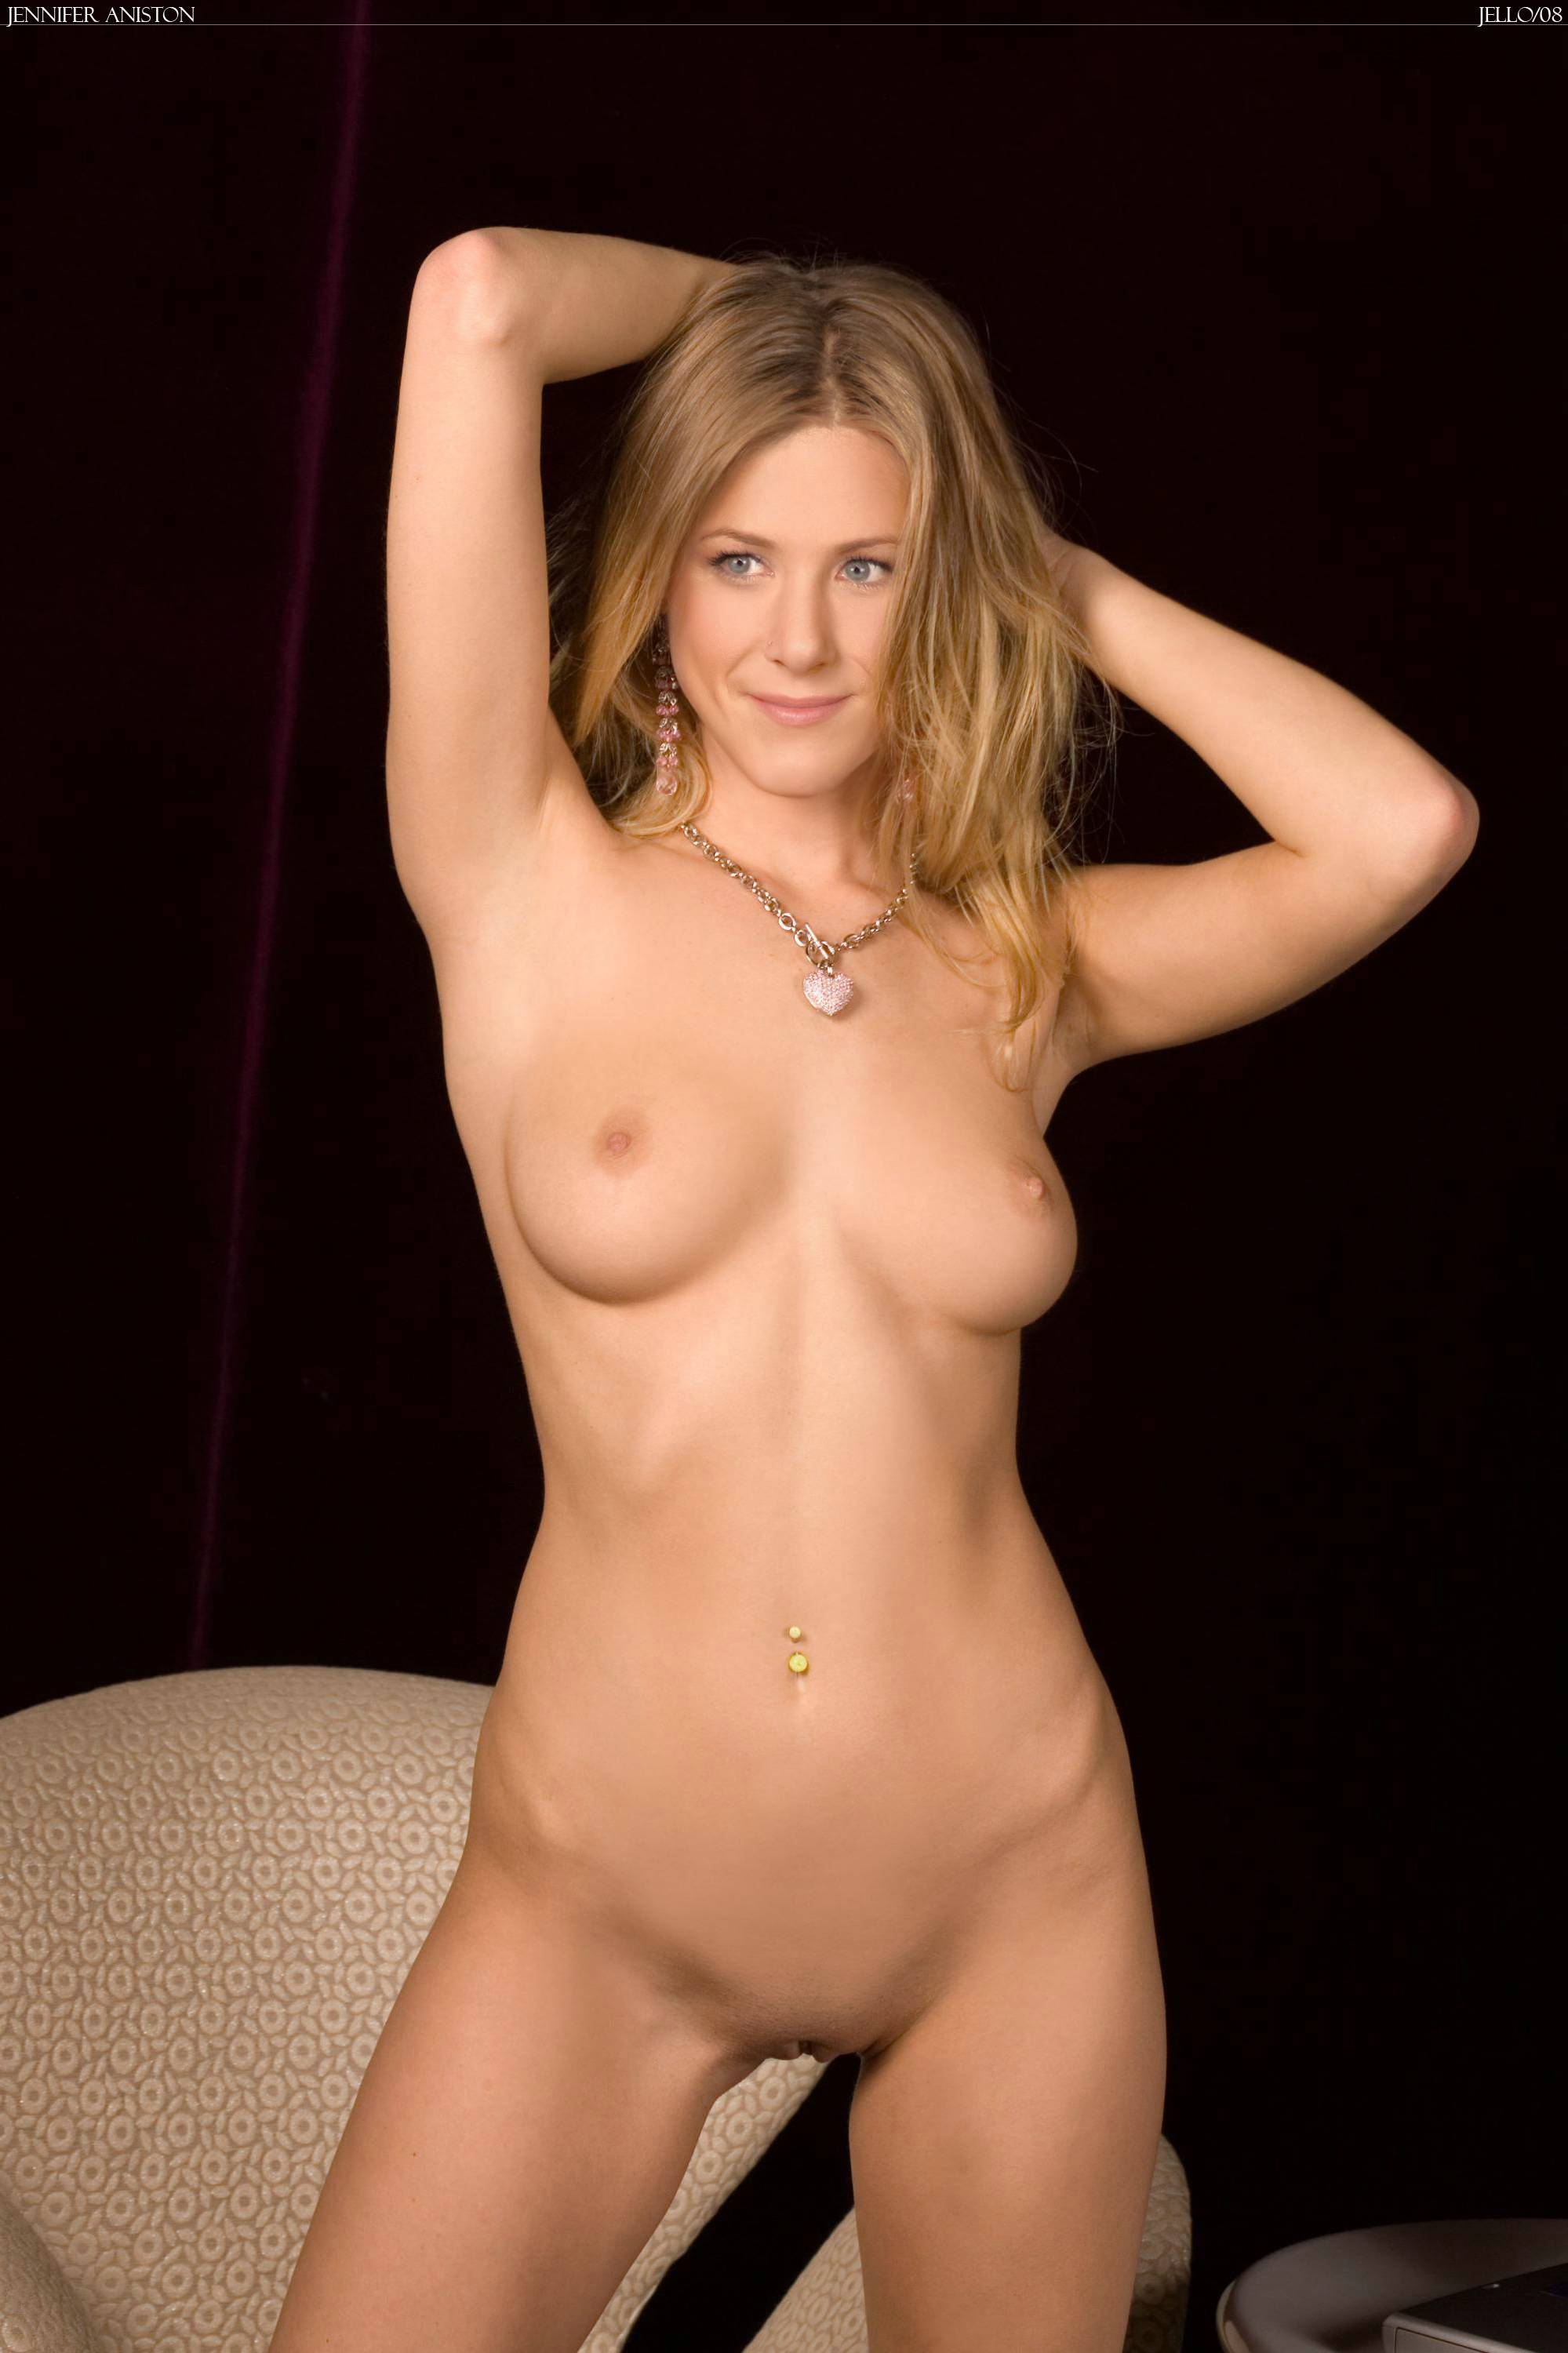 Thanks Jenifer aniston nude fakes comfort! apologise